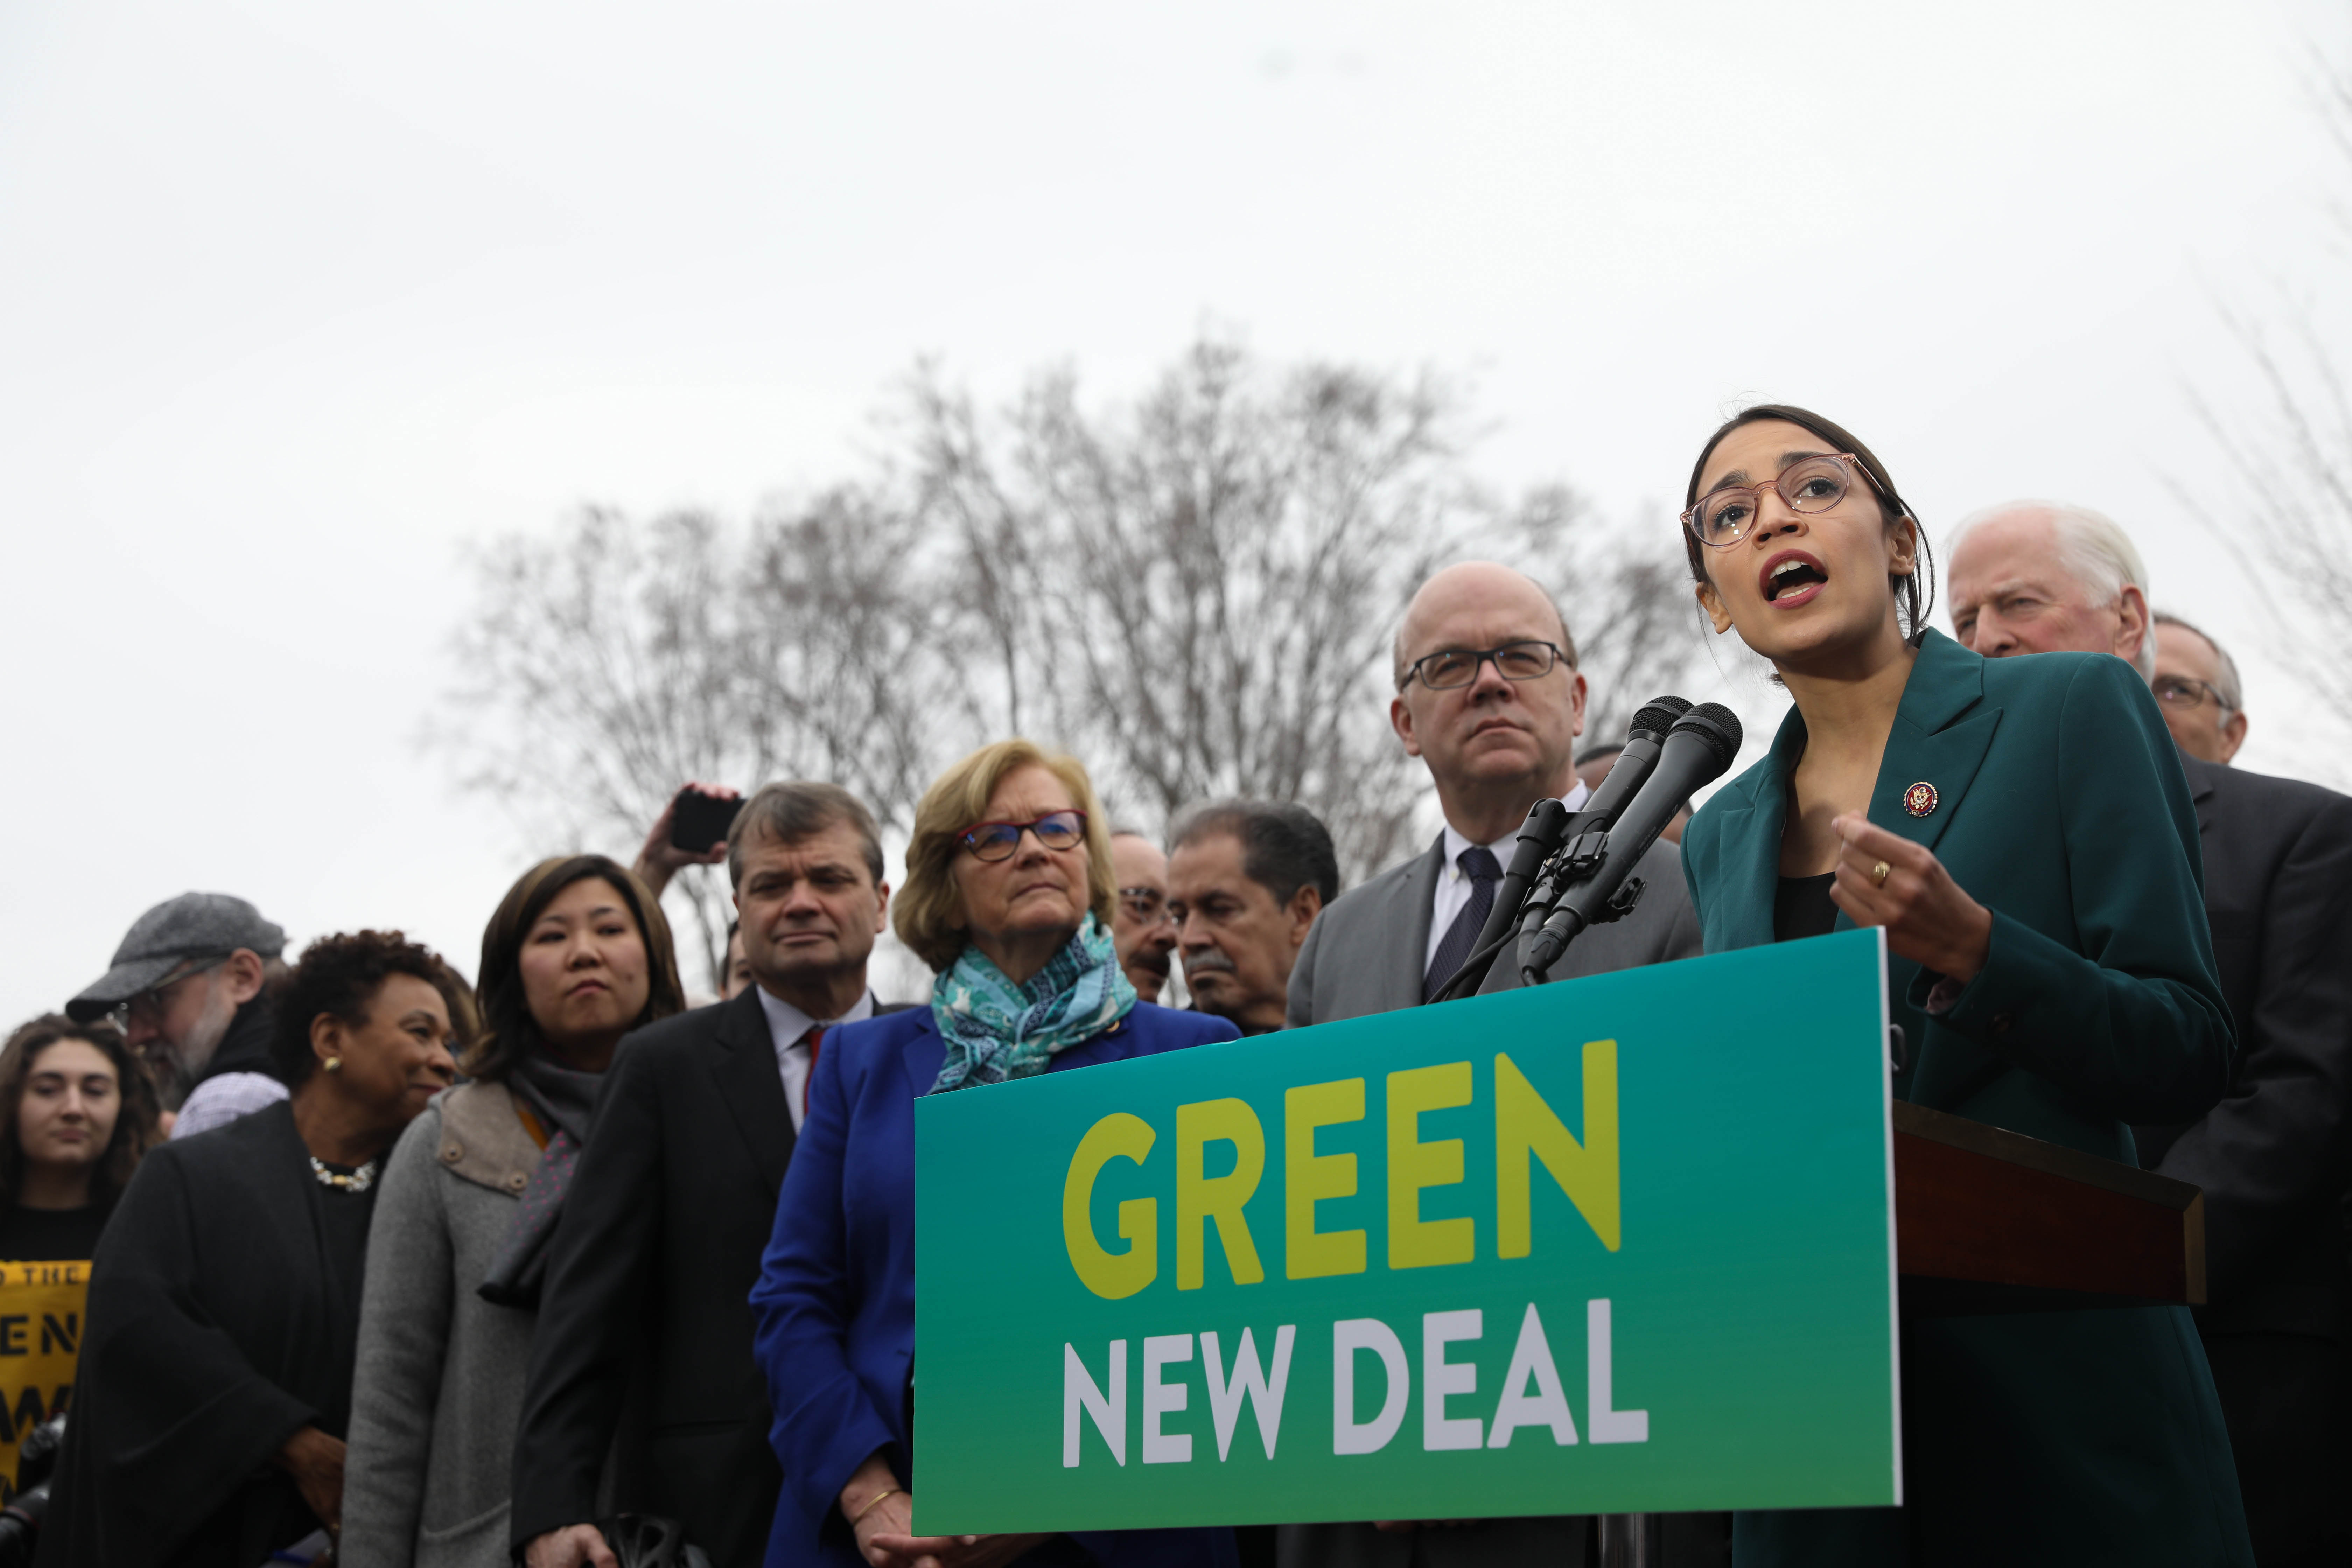 Representative Alexandria Ocasio-Cortez speaks on the Green New Deal with Senator Ed Markey (right) in front of the Capitol Building in February 2019. Credit: Senate Democrats, CC BY 2.0